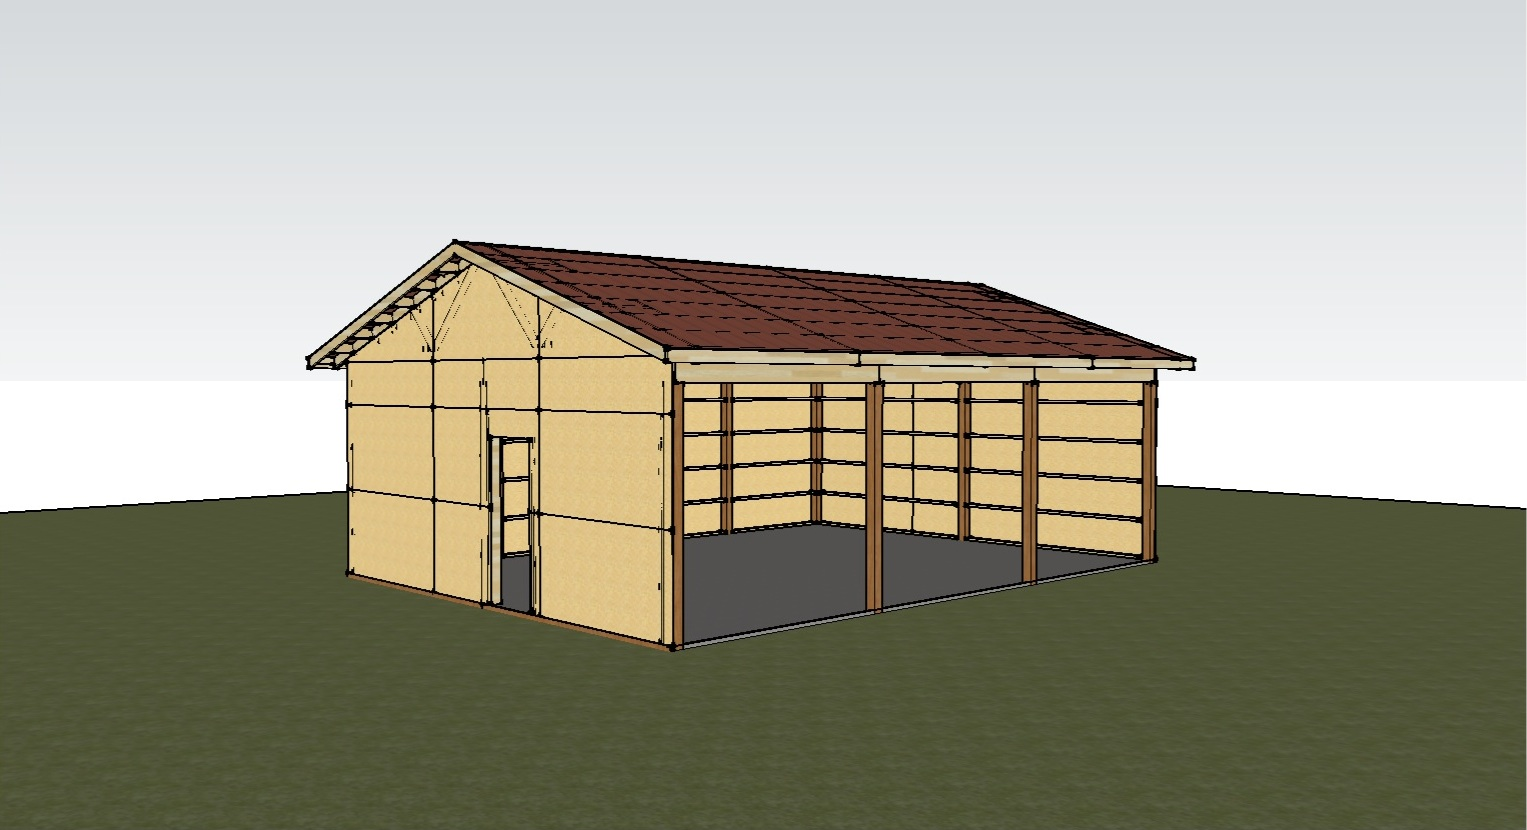 Pole barn plans and materials redneck diy for 24 x 32 pole barn plans